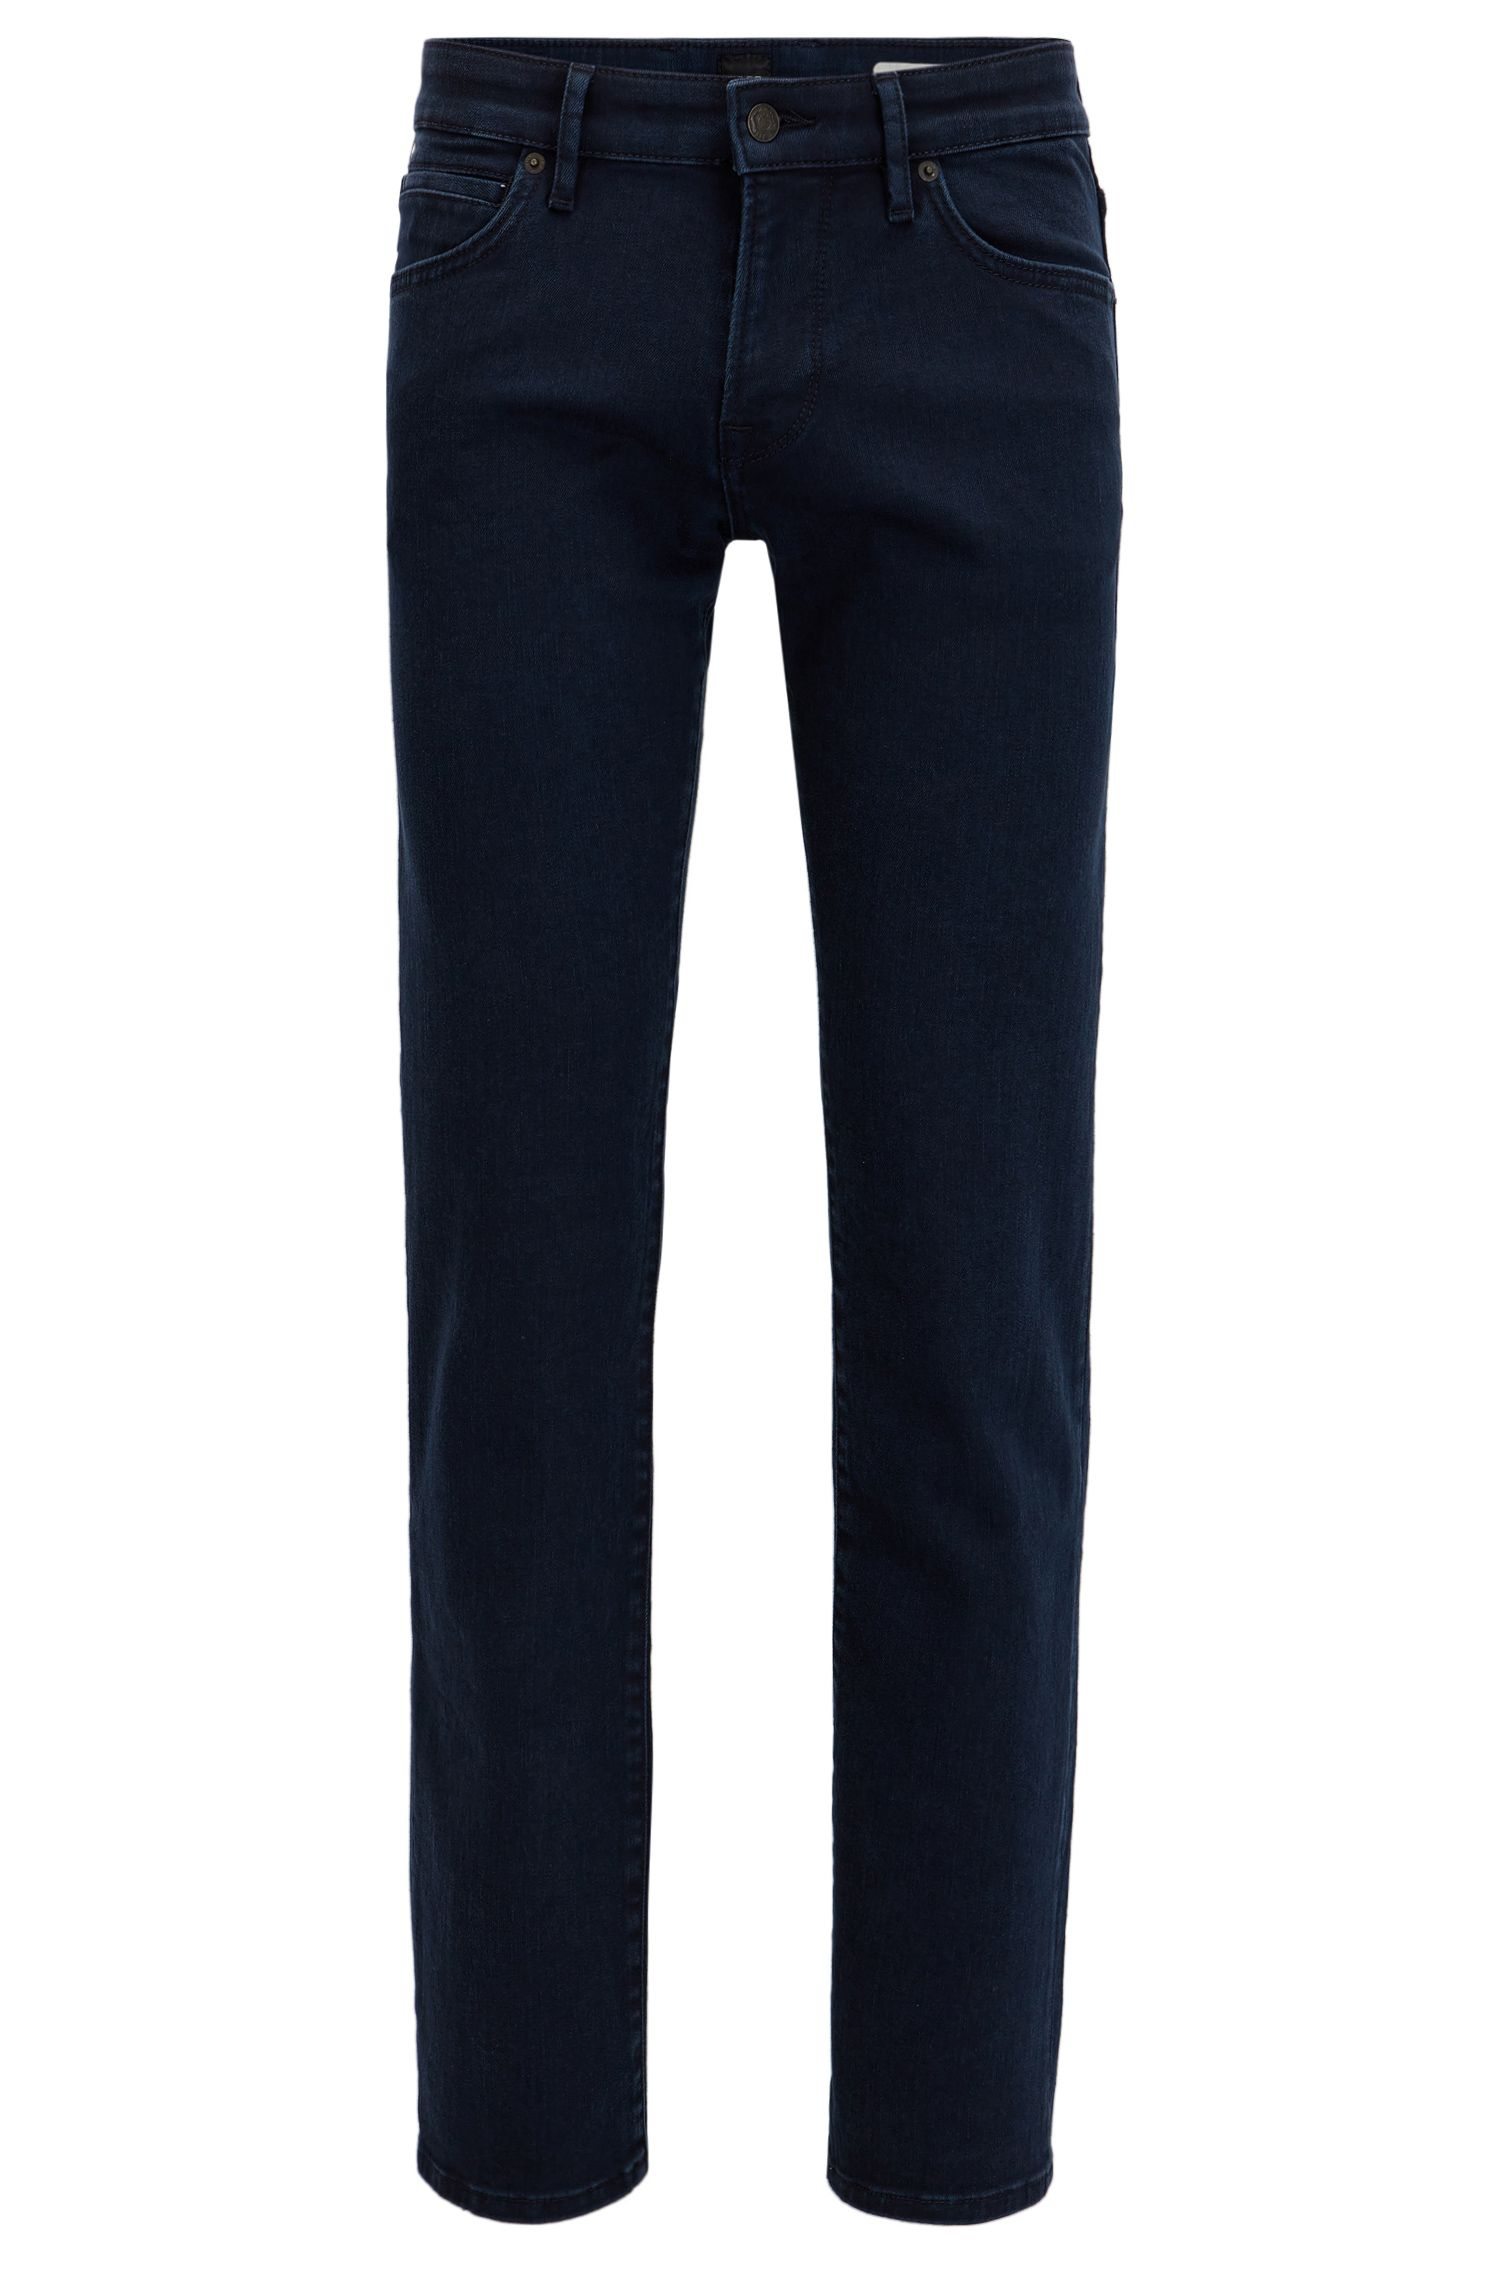 Regular-fit blue jeans in comfort stretch denim